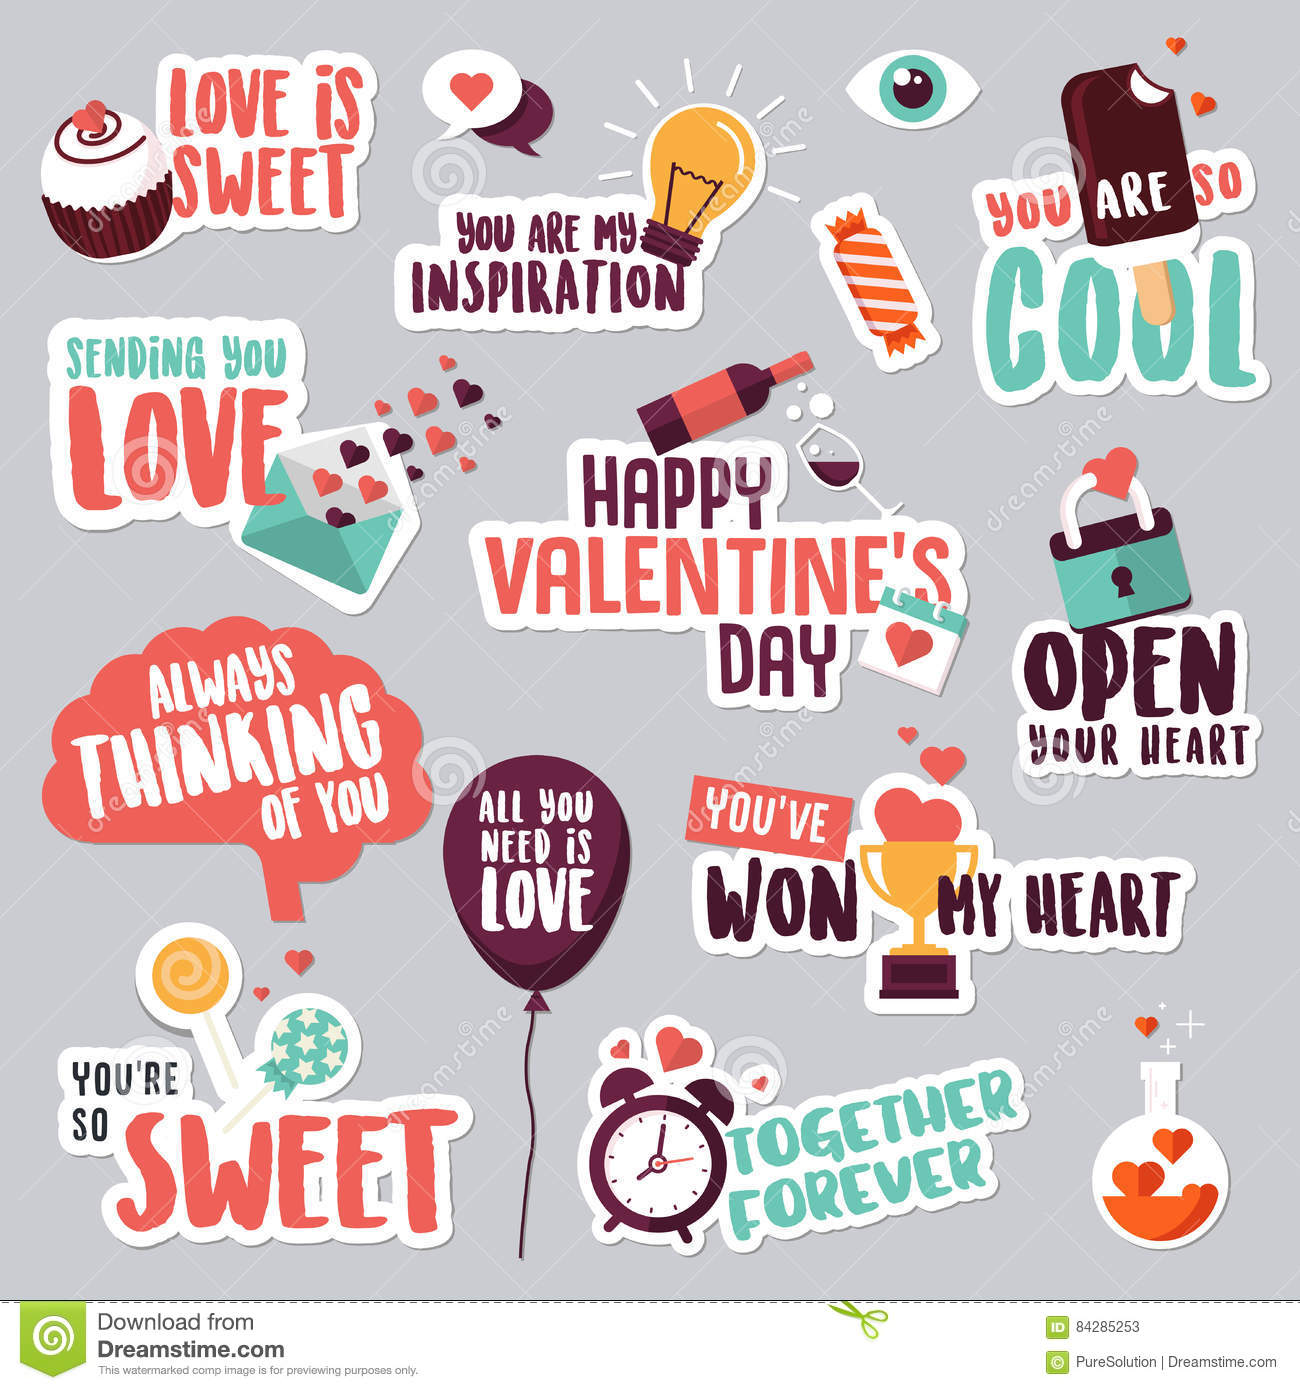 Sweet and funny stickers for mobile messages chat social media networking web design stickers for valentine day wedding love messages